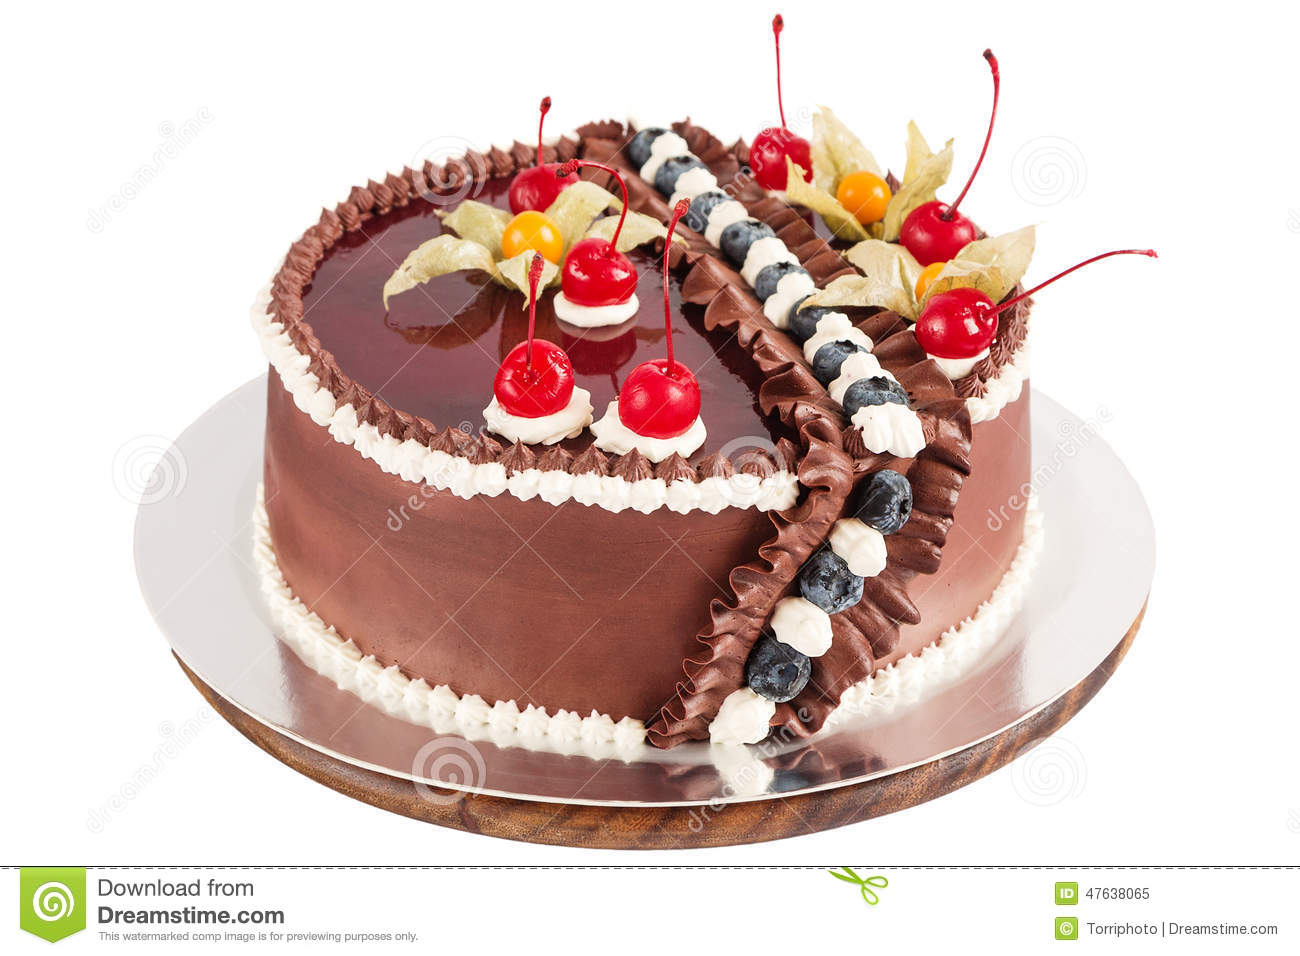 Traditional Chocolate Cake Decorated With Cream Cherries